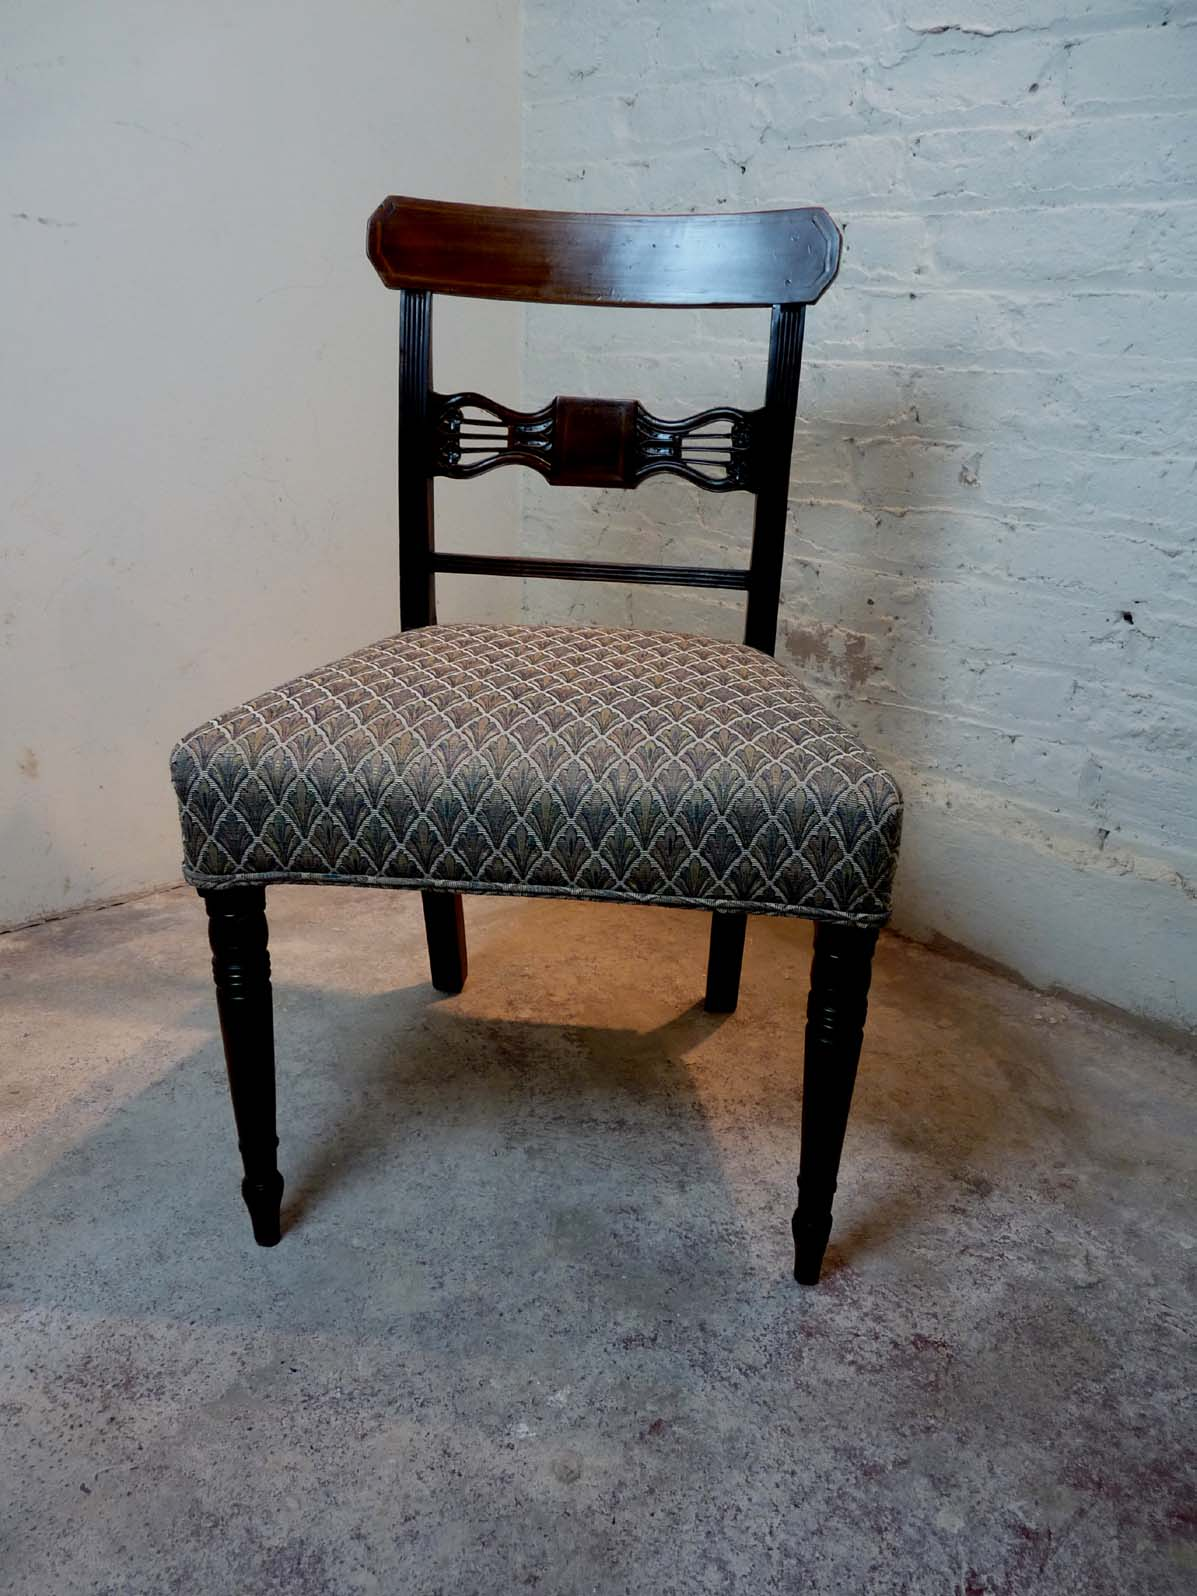 19th Century Chair Antiques in Margate